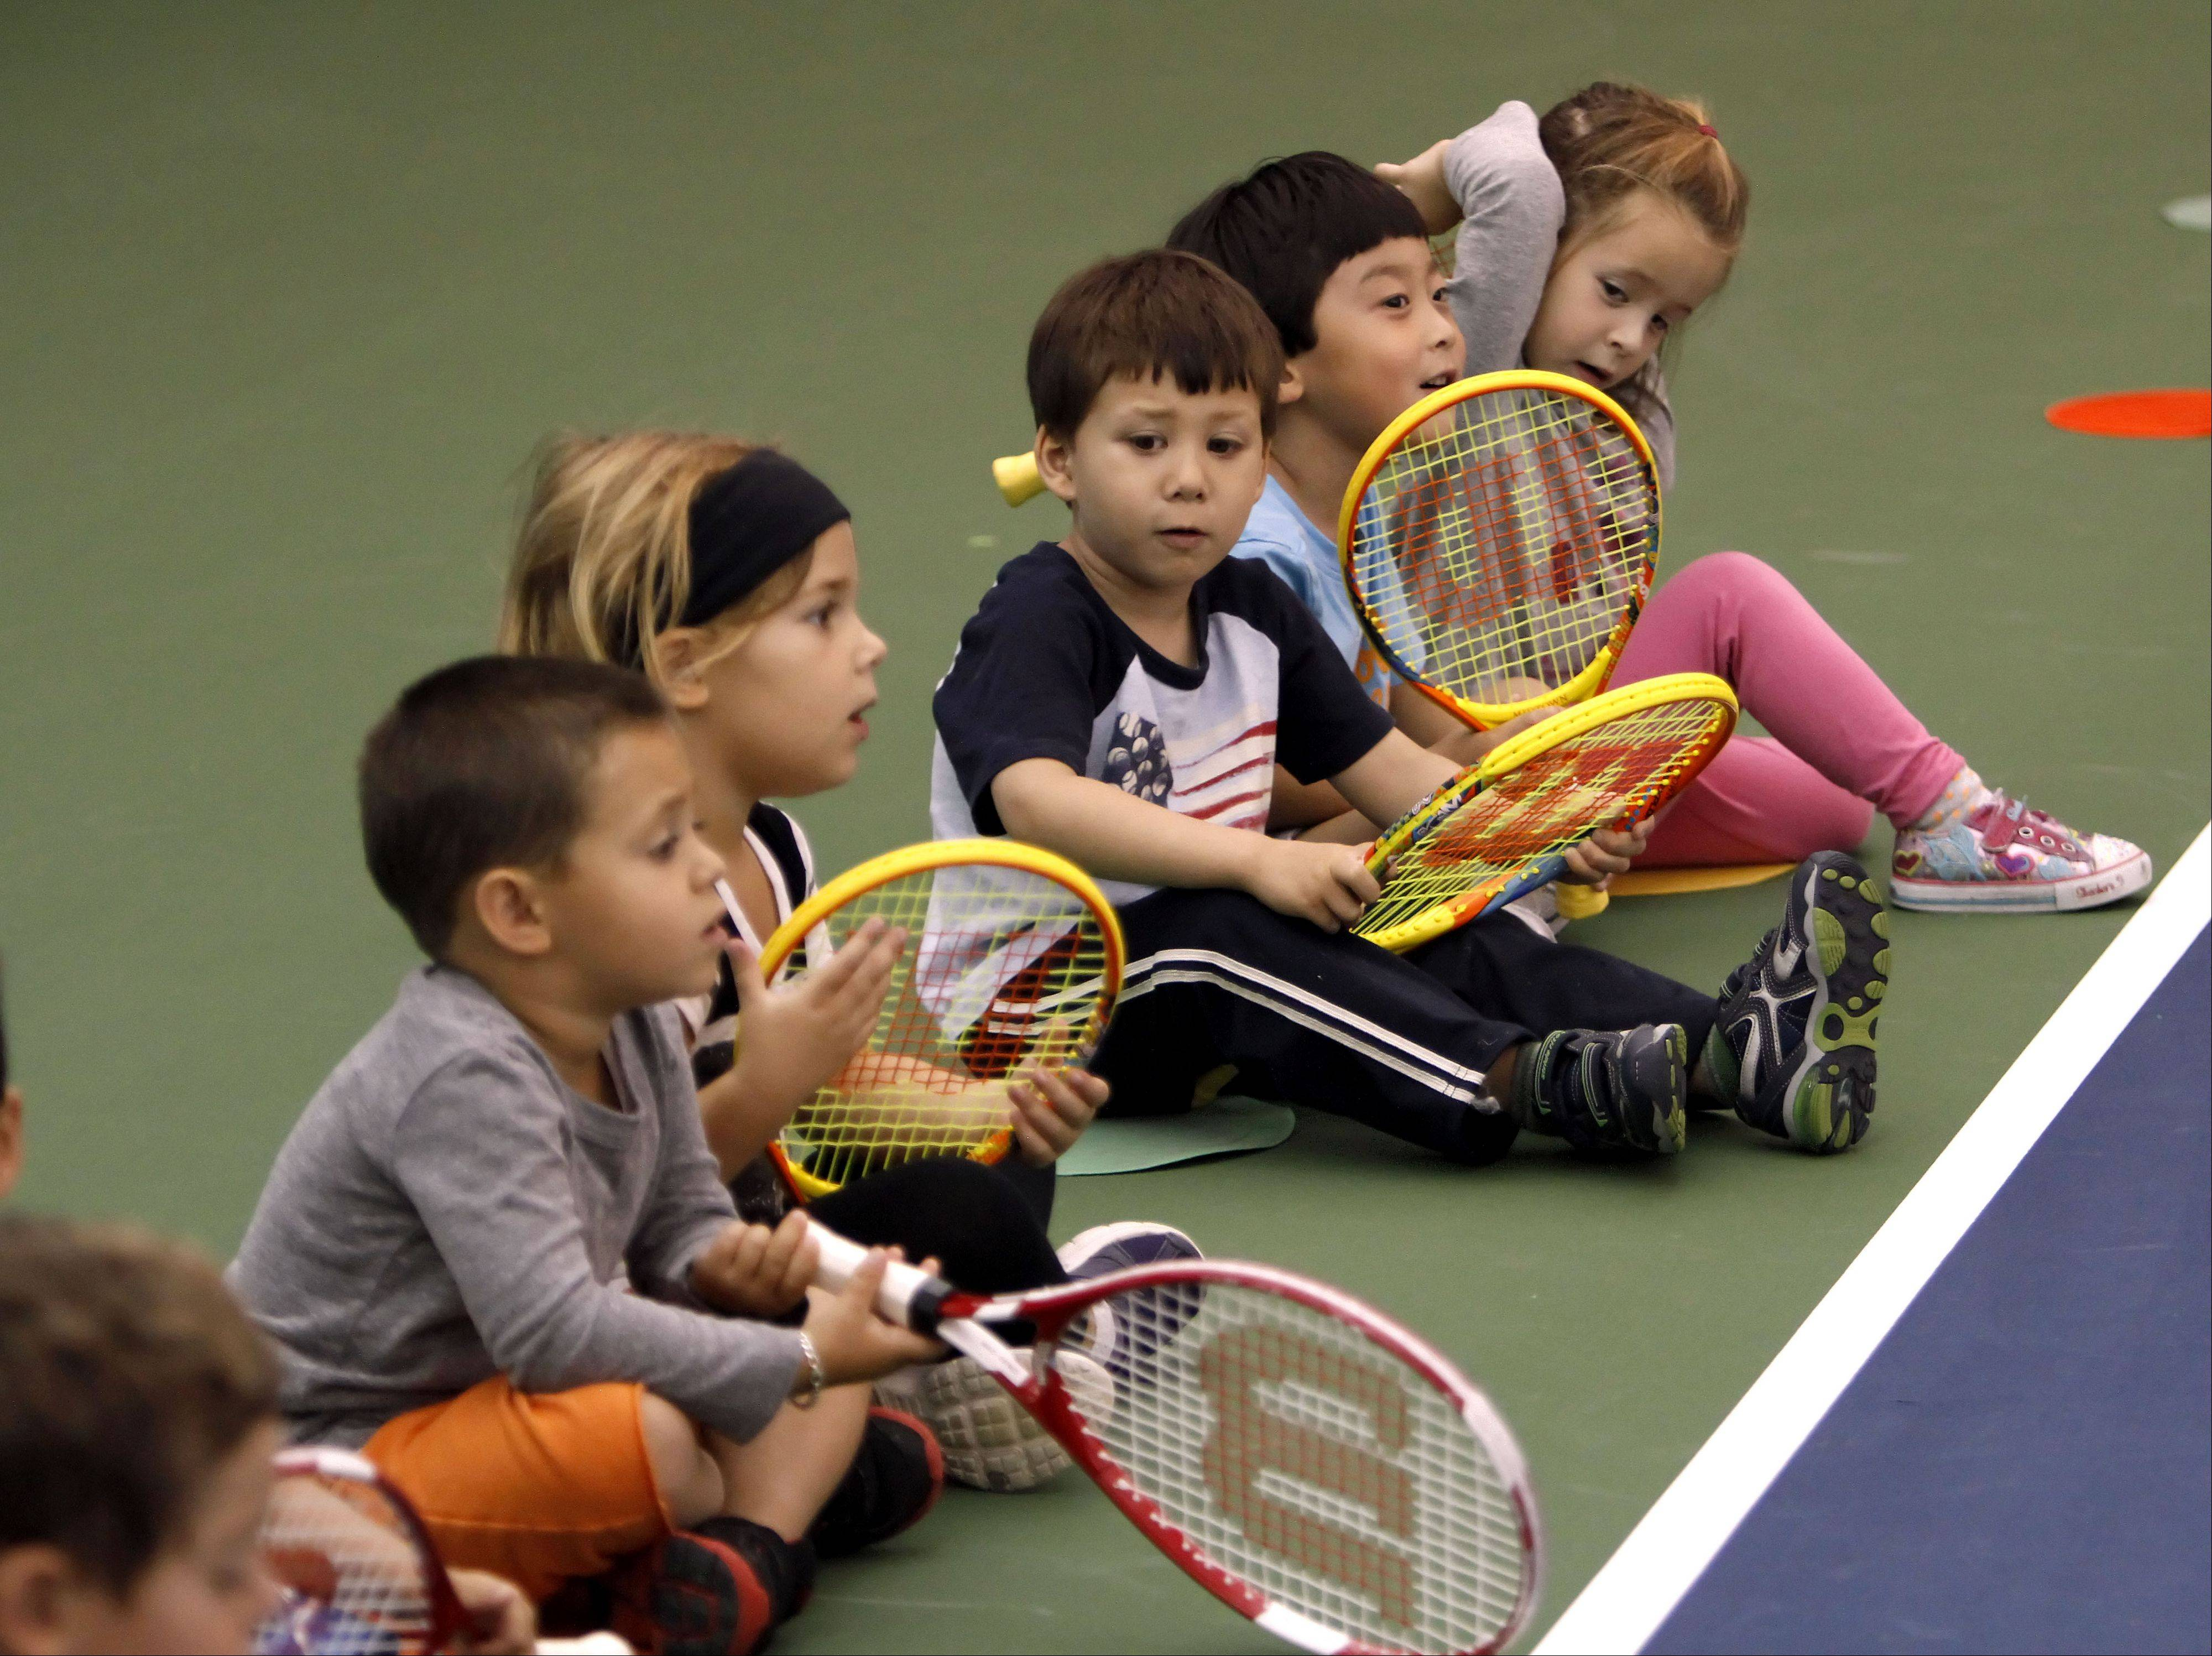 Midtown Athletic Club in Bannockburn holds Tennis Explorers, a tennis program for toddlers that blends physical activities, tennis skills and storytelling in an on-court environment.